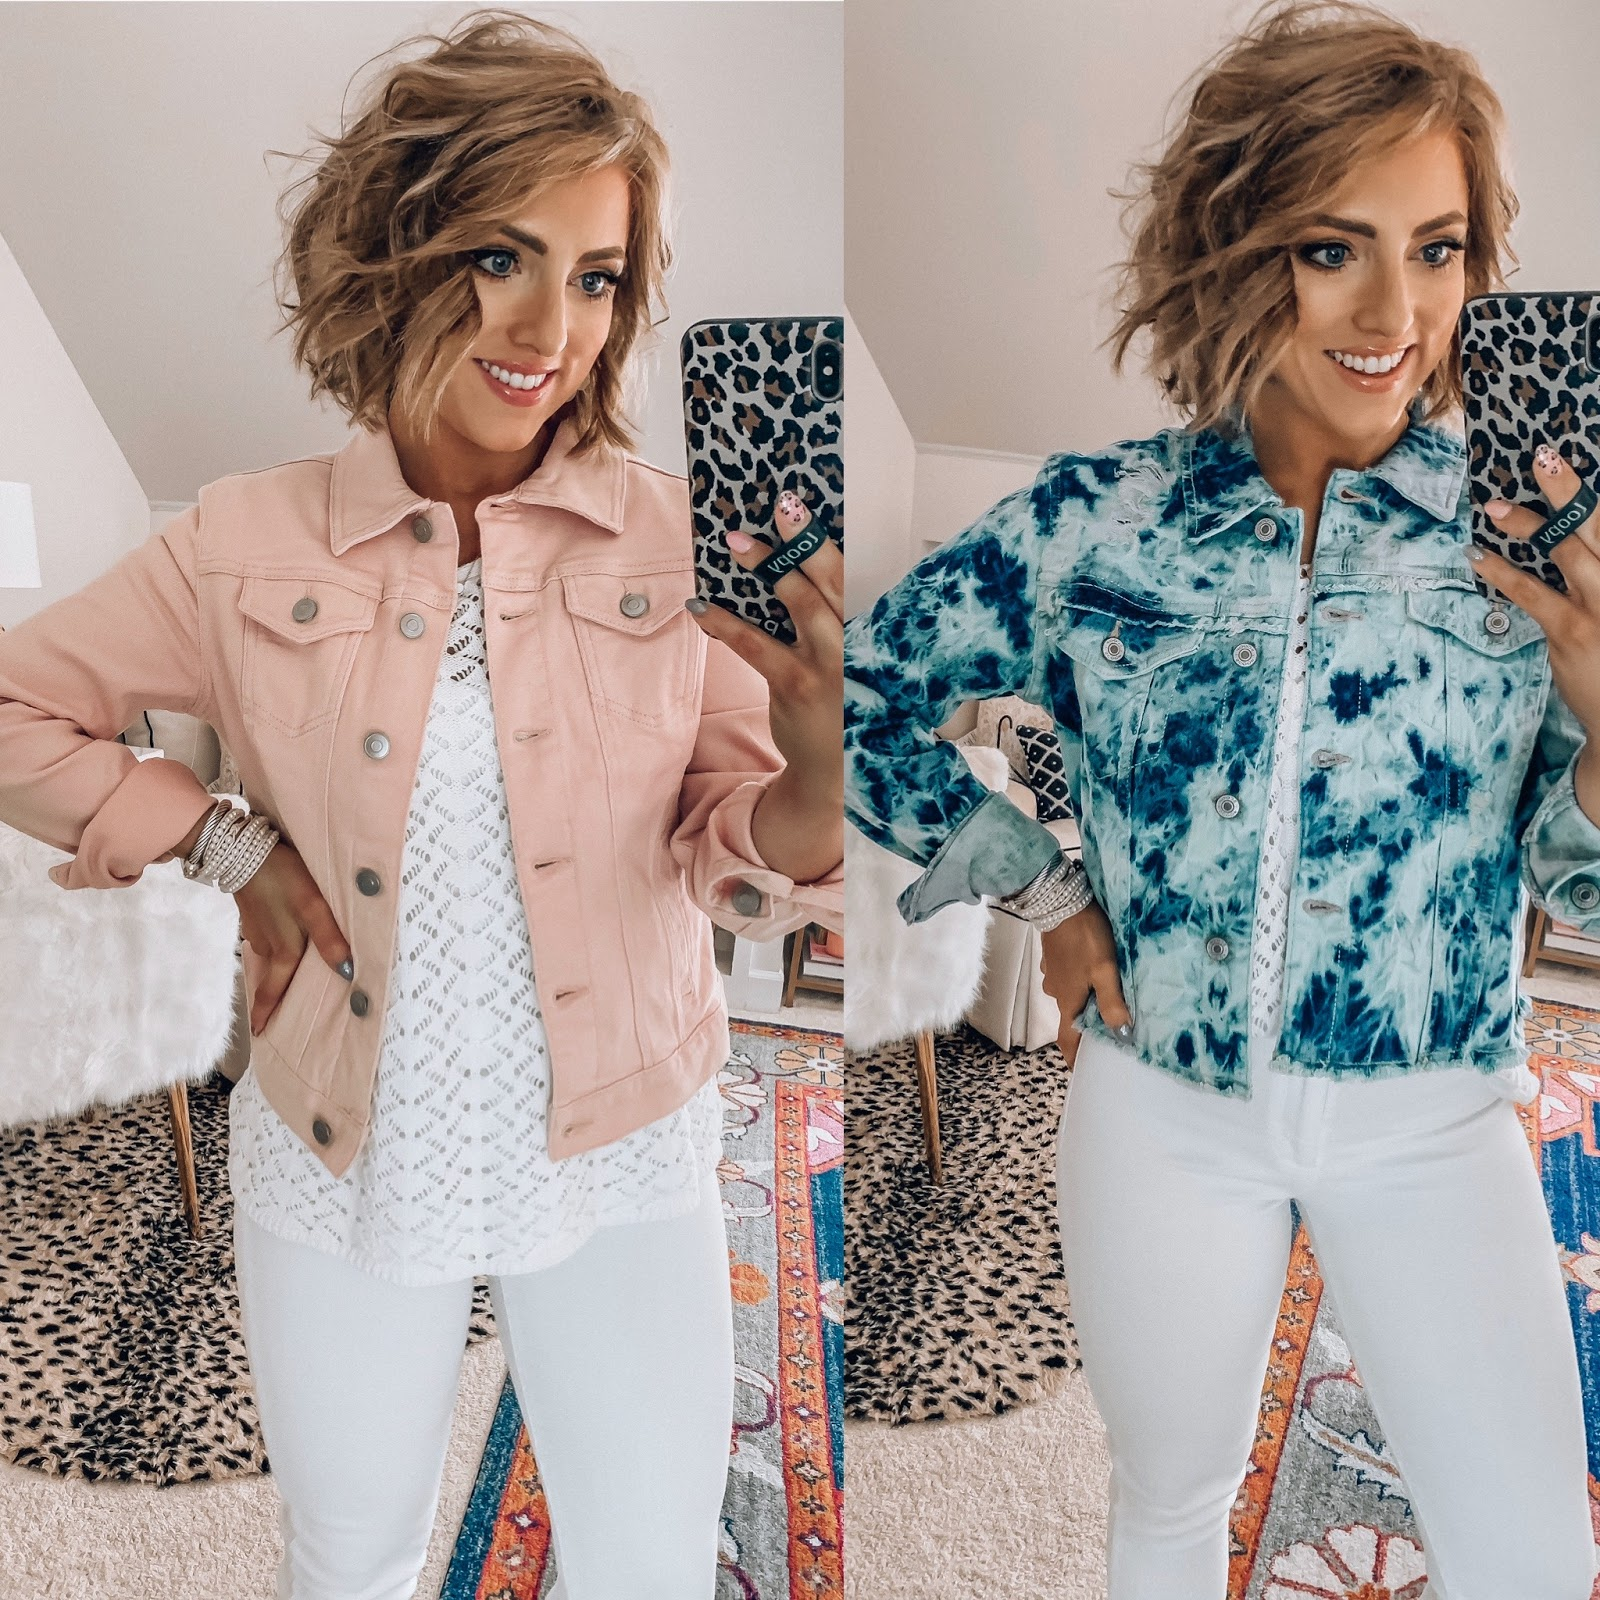 Spring Finds With Walmart - Something Delightful Blog #WalmartFashion #SpringFashion #AffordableFashion #TieDye #Overalls #Chambray